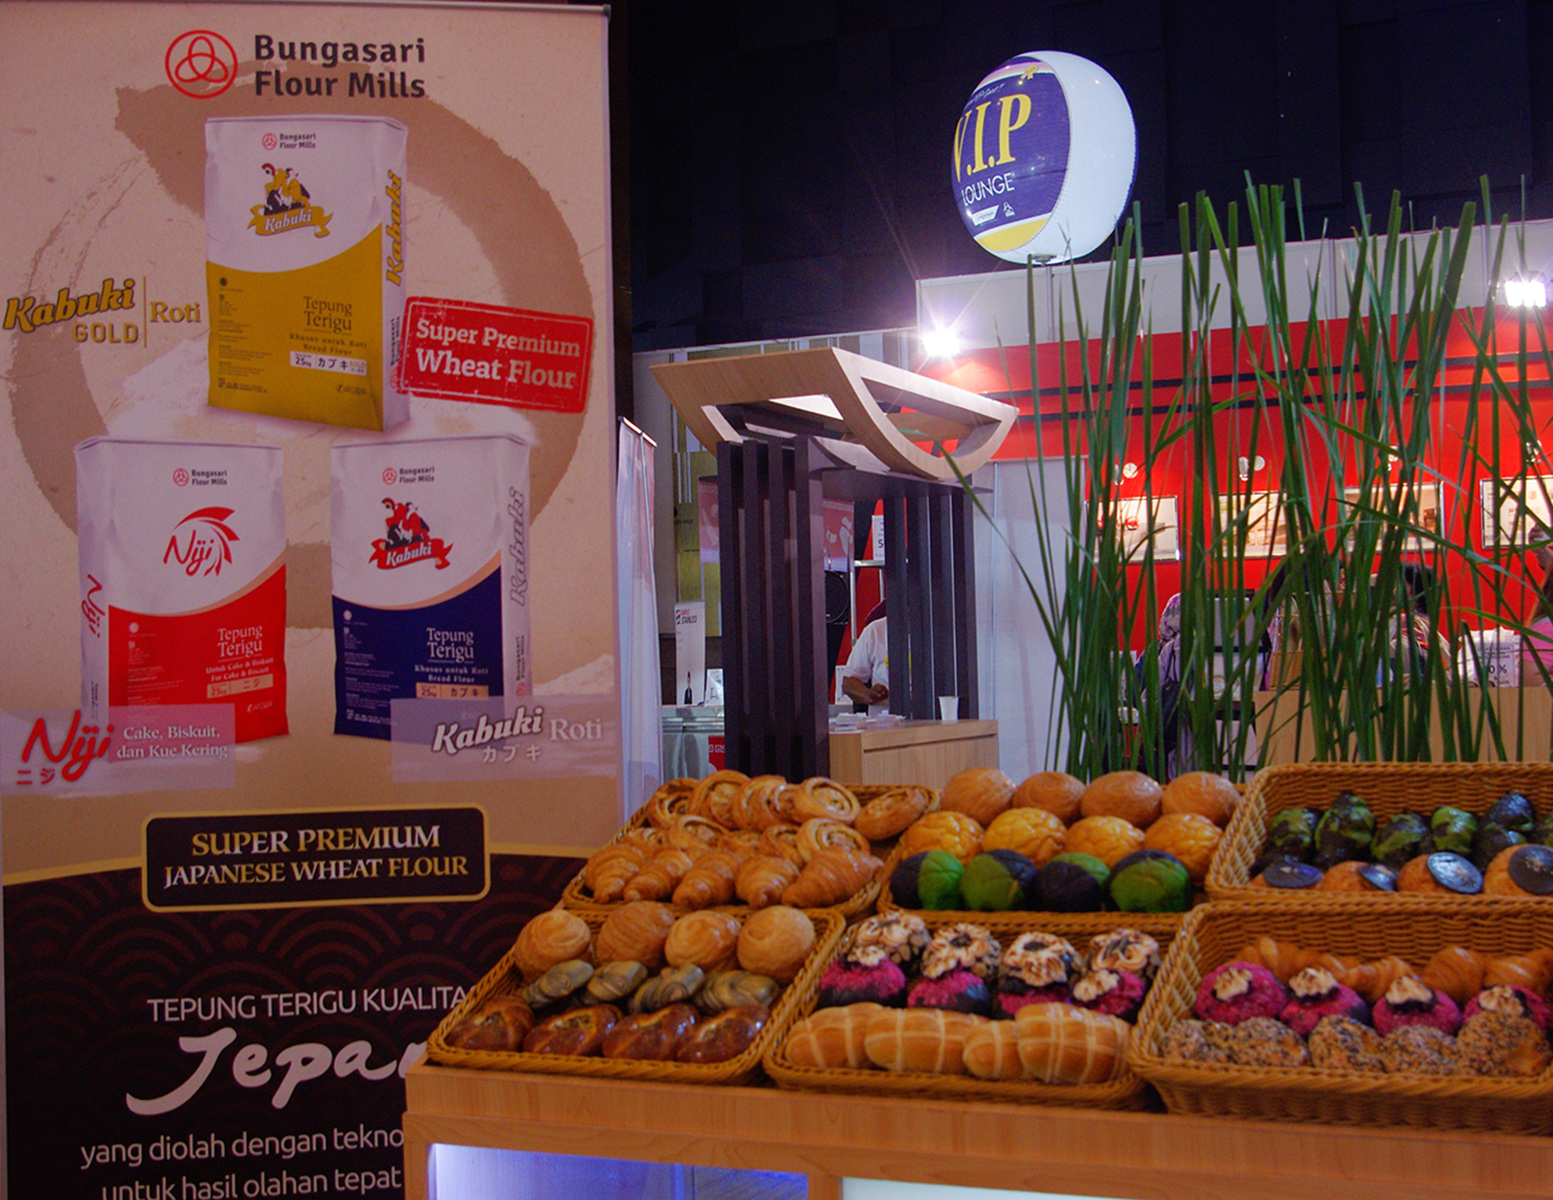 Bungasari at SIAL Interfood